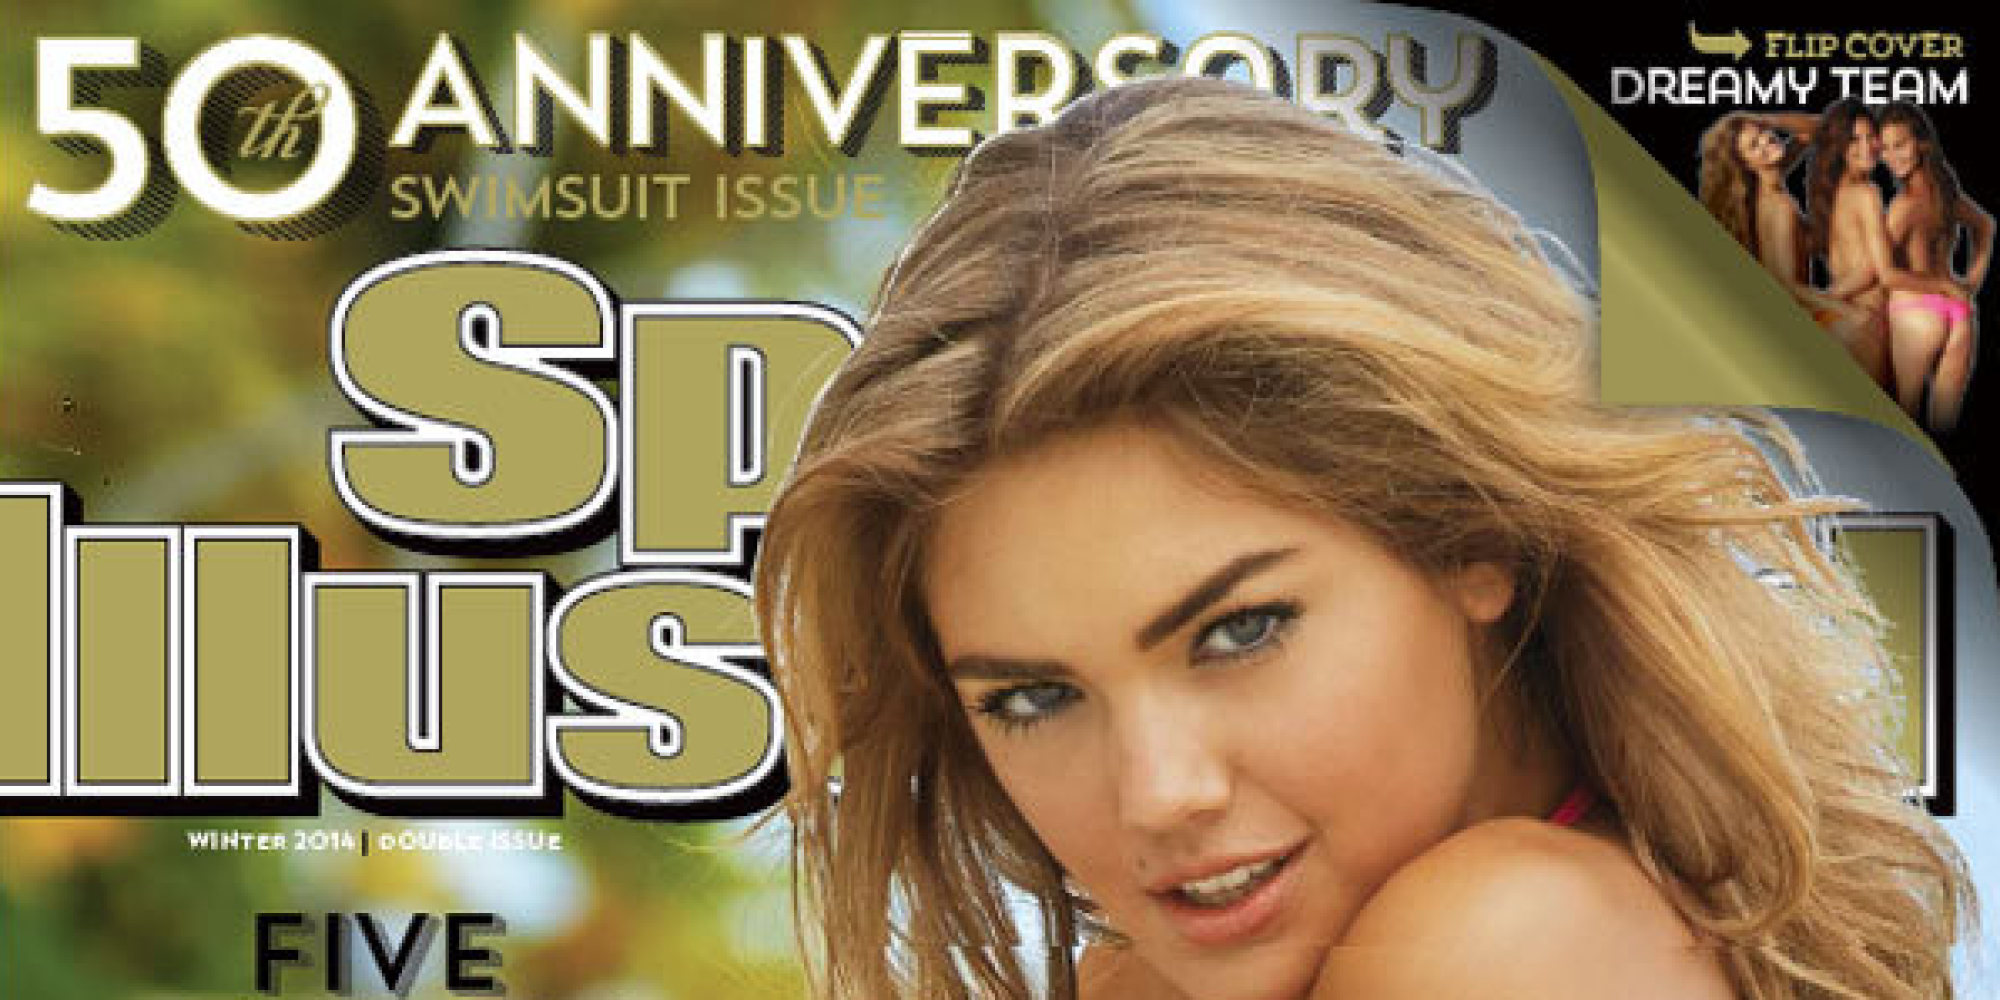 kate upton scores her third sports illustrated swimsuit cover photo